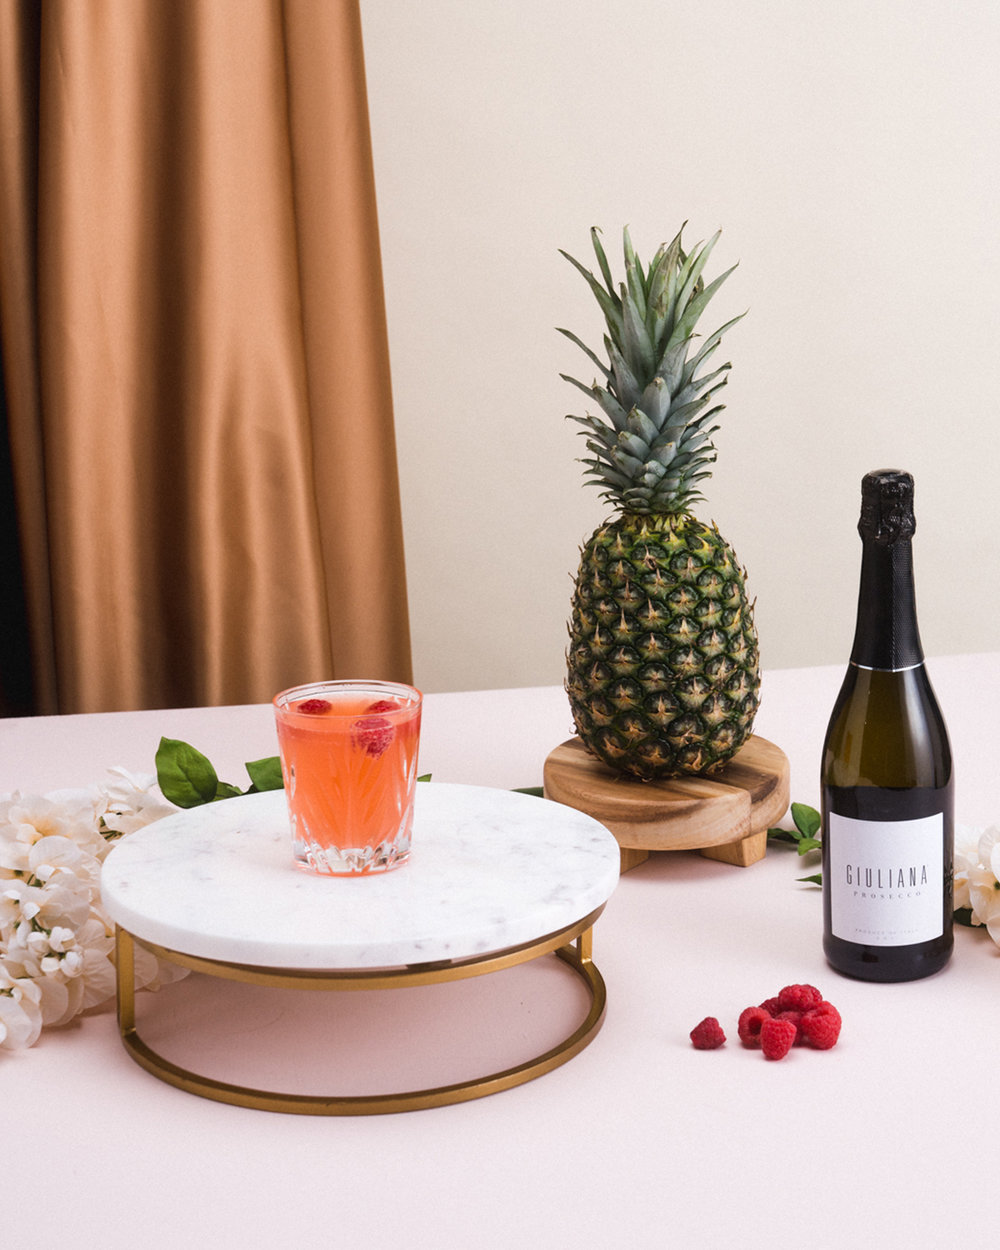 Prepare for your holiday toast with this Sparkling Punch! Fresh fruit flavors combine with #GiulianaProsecco for a little tropical retreat from cold winter weather.